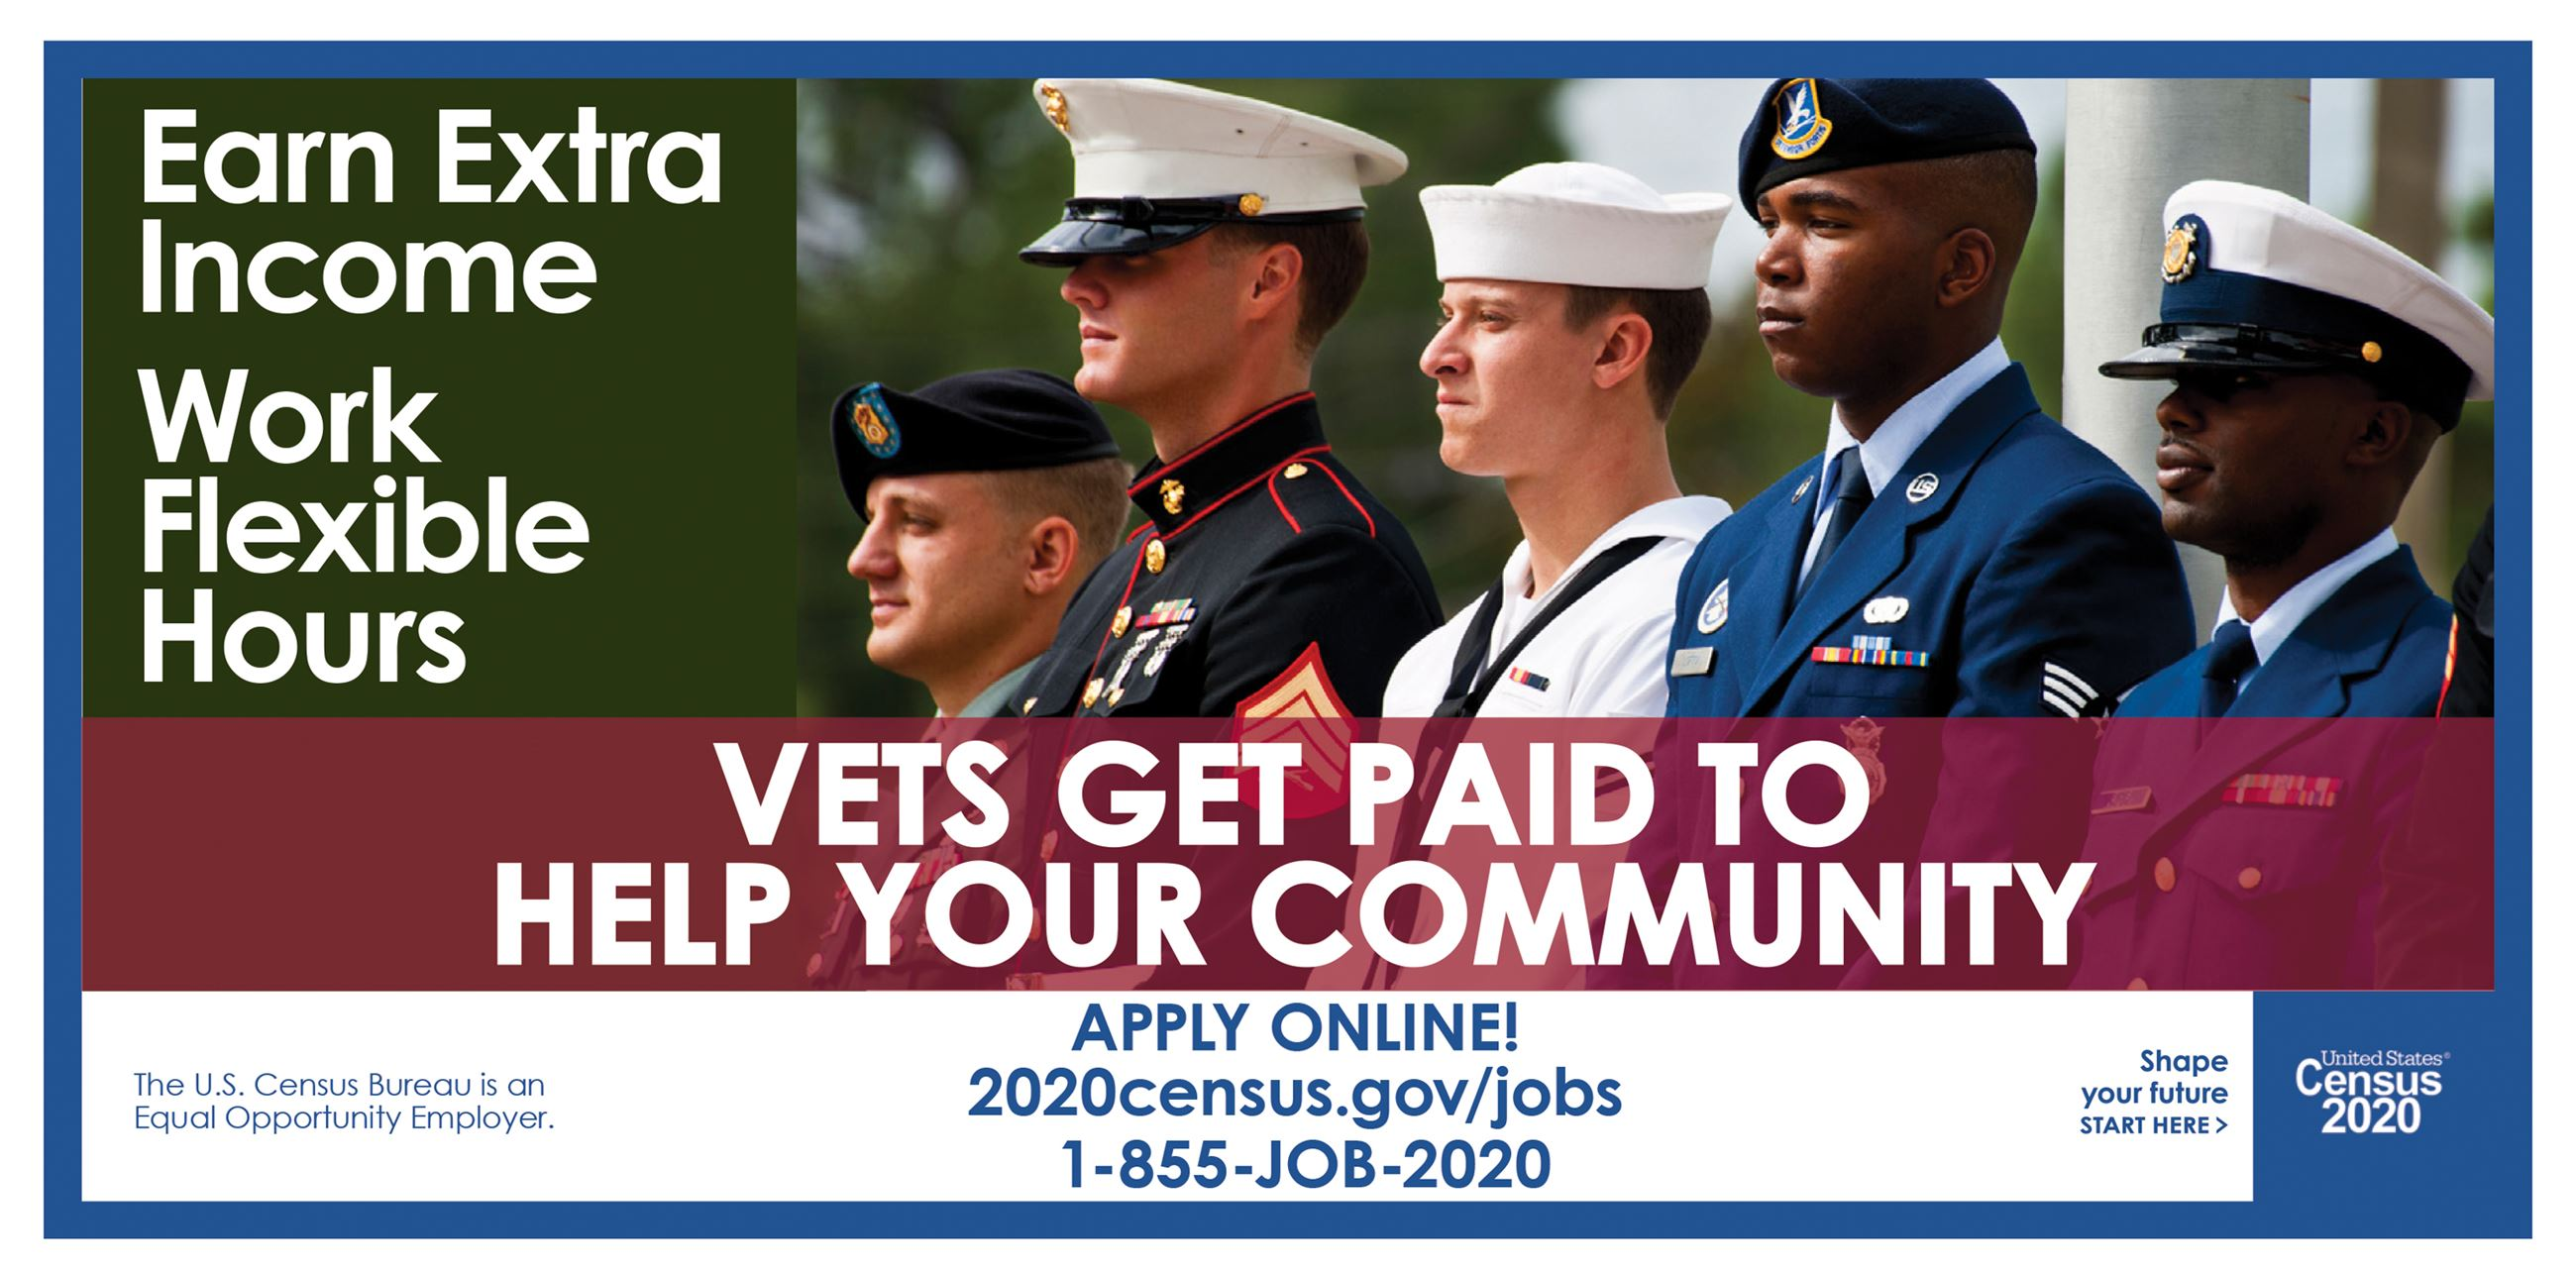 Earn extra income work flexible hours vets get paid to help your community apply online 2020census.g